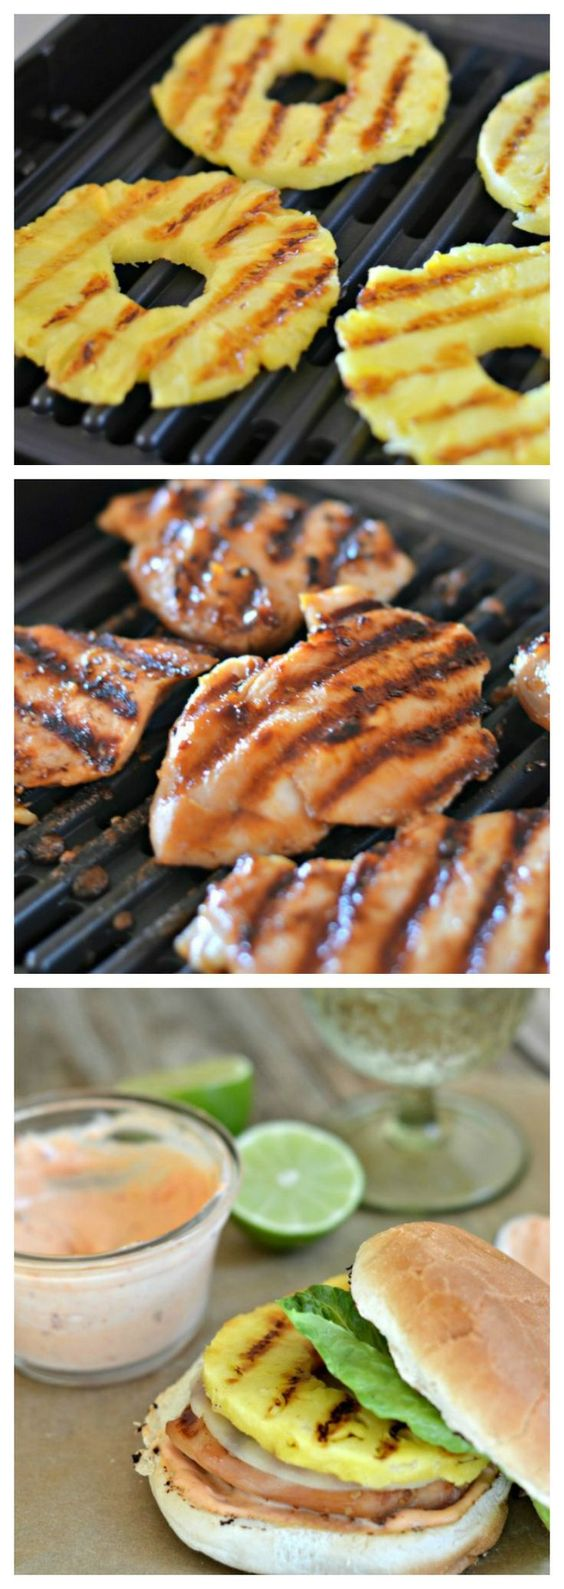 Grilled Teriyaki Chicken and Pineapple Burgers with a Spicy Aioli ...